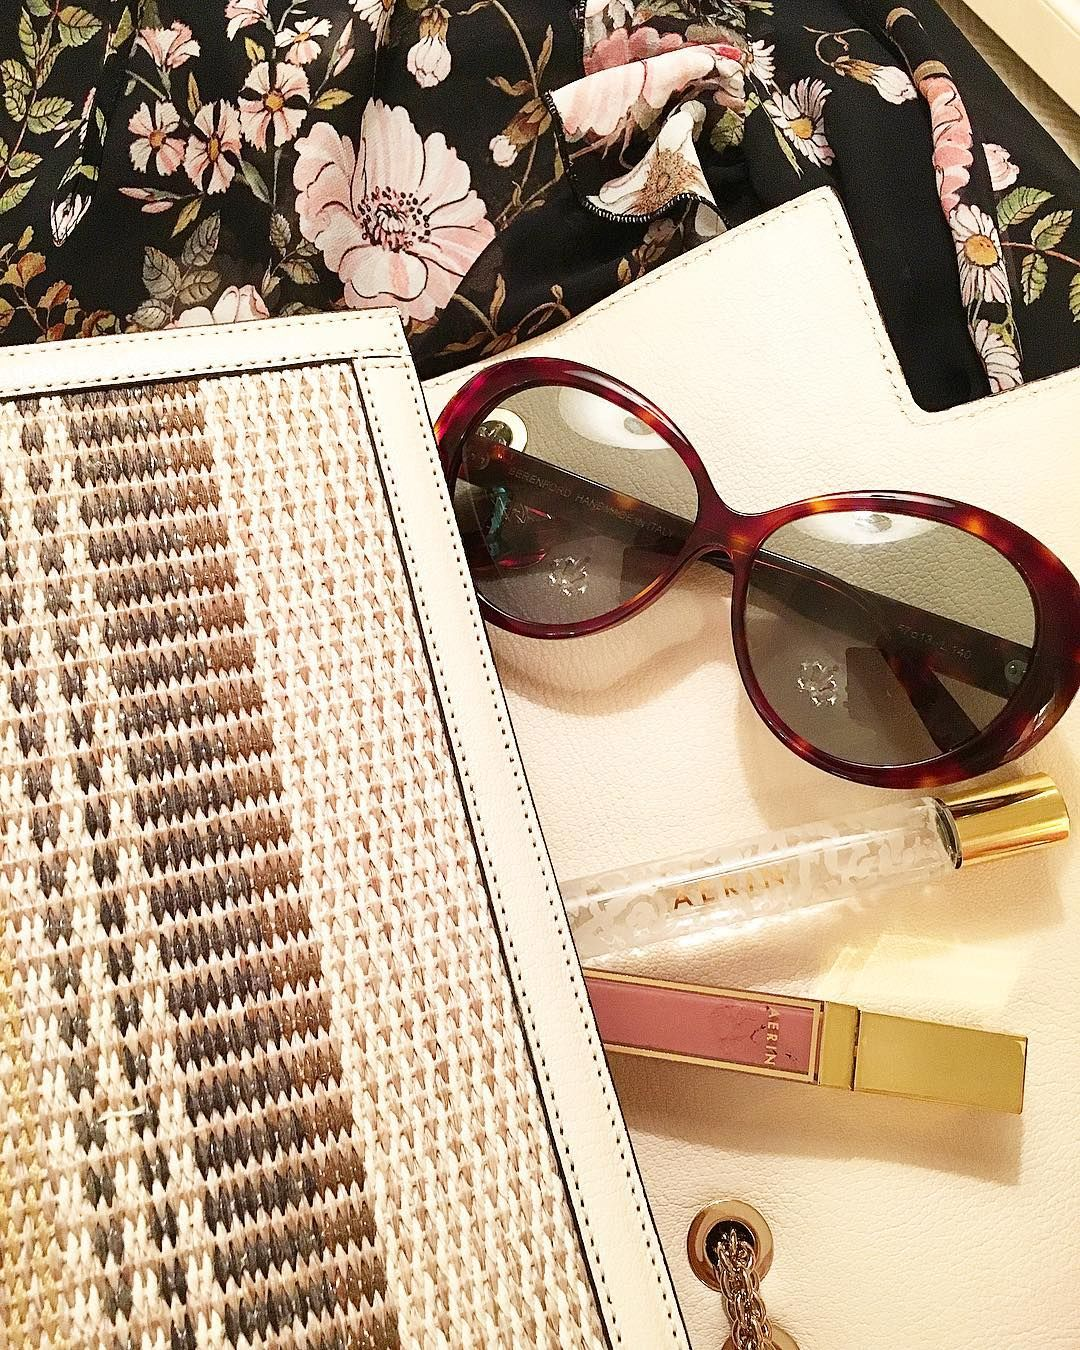 1 278 Aprecieri 7 Comentarii Aerin Pe Instagram Happy Monday Nyc Chic With Berenford World Jacki Jackie O Style Fashion Sunglasses Rollerball Fragrance